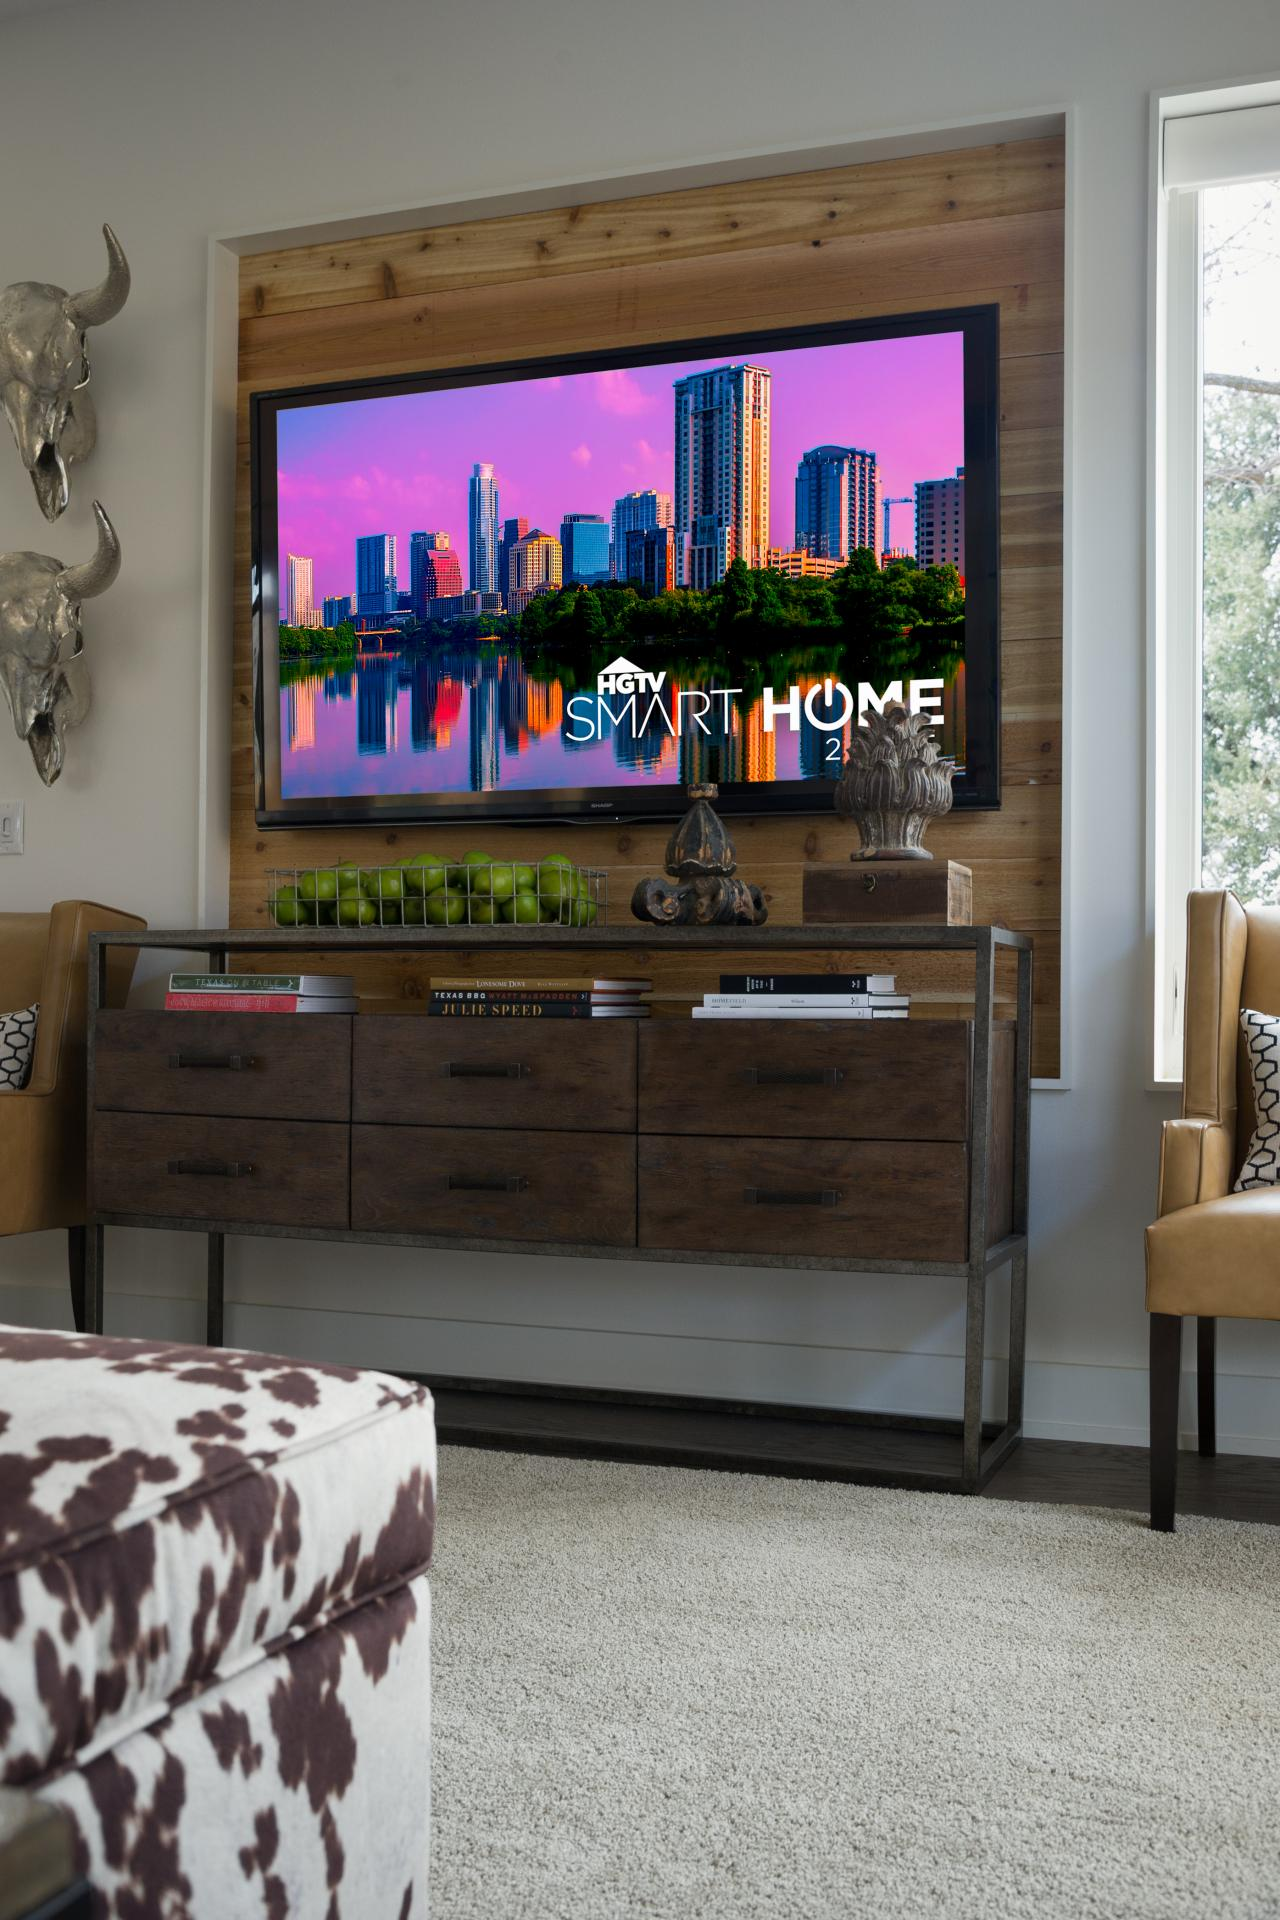 Remodelaholic 95 ways to hide or decorate around the tv build a wood television niche hgtv amipublicfo Gallery